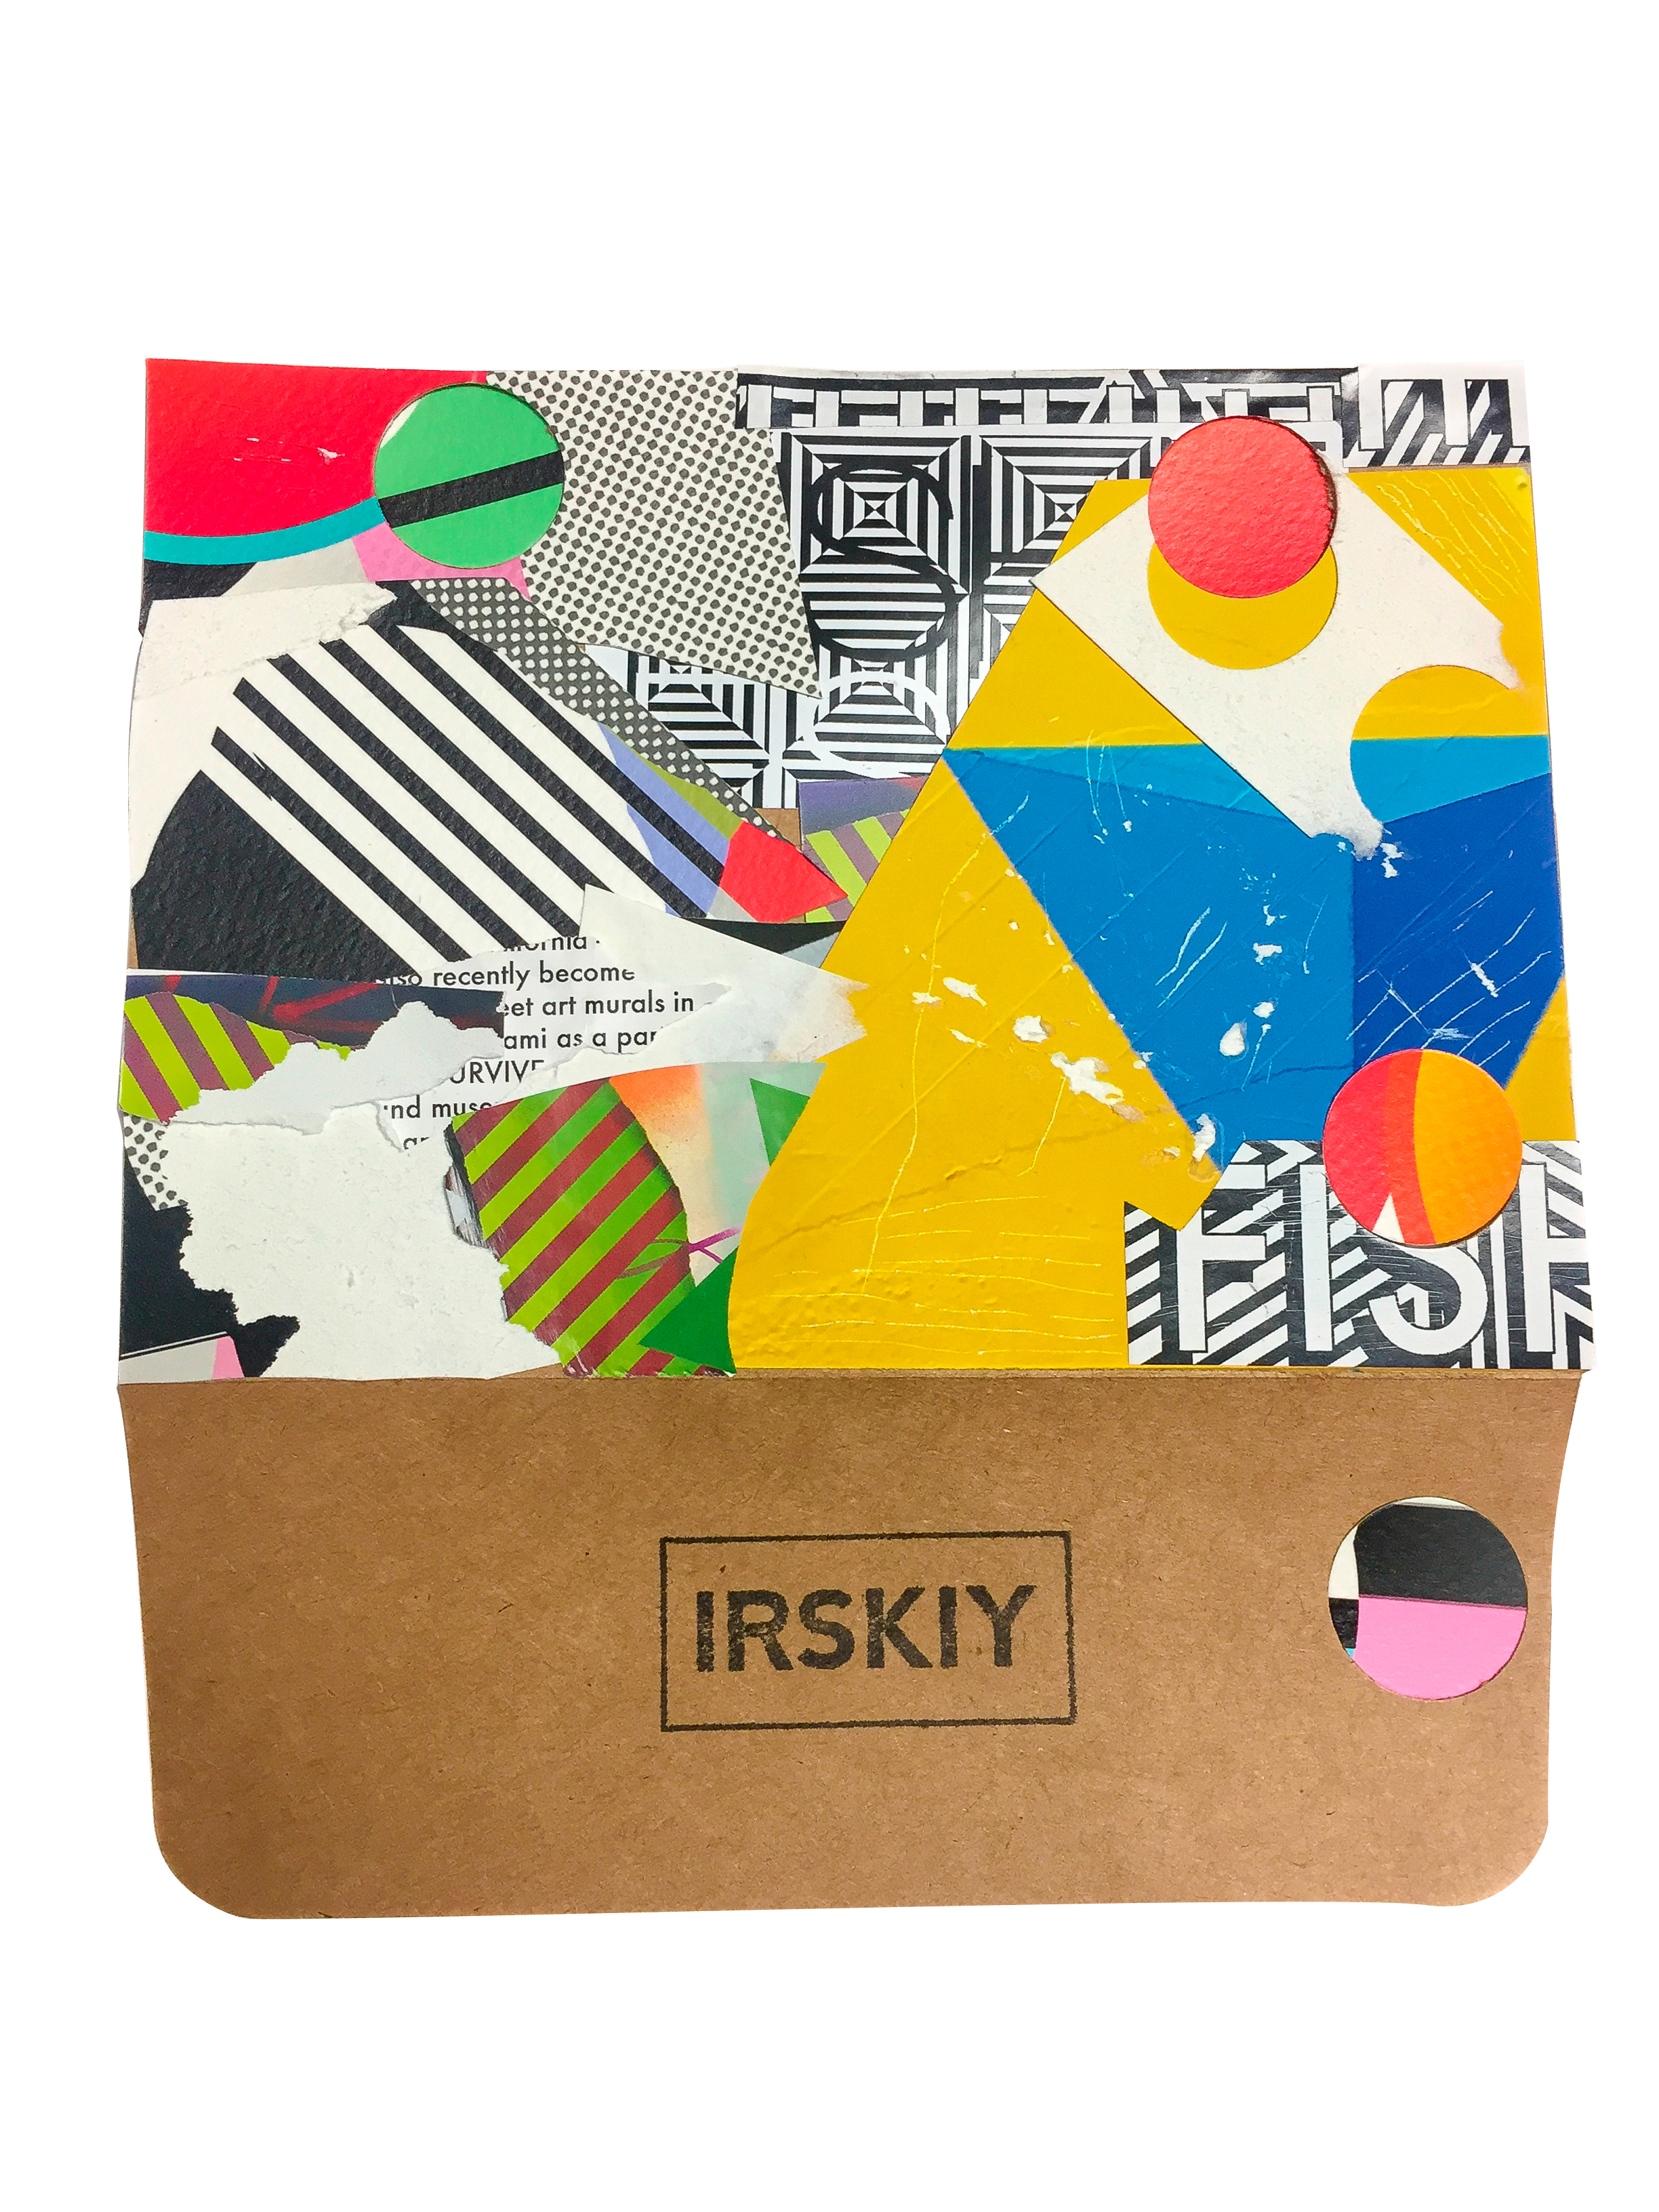 IRSKIY x FISHE - Print and paper on kraft envelope2017